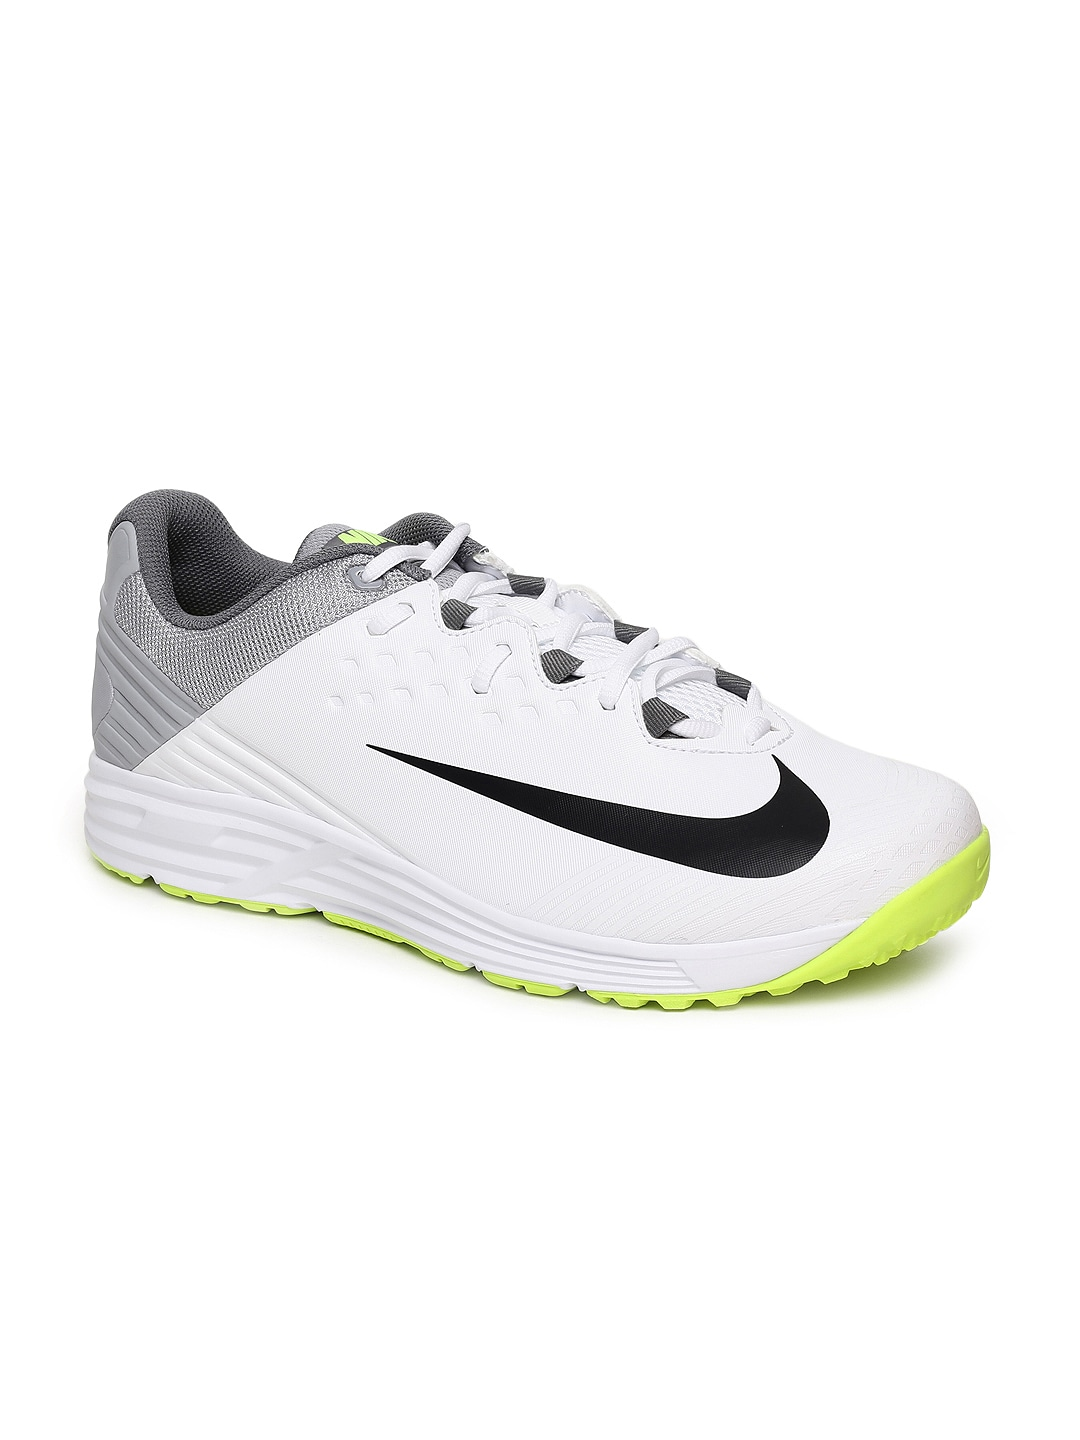 a57ad2b5309d Nike Shoes - Buy Nike Shoes for Men